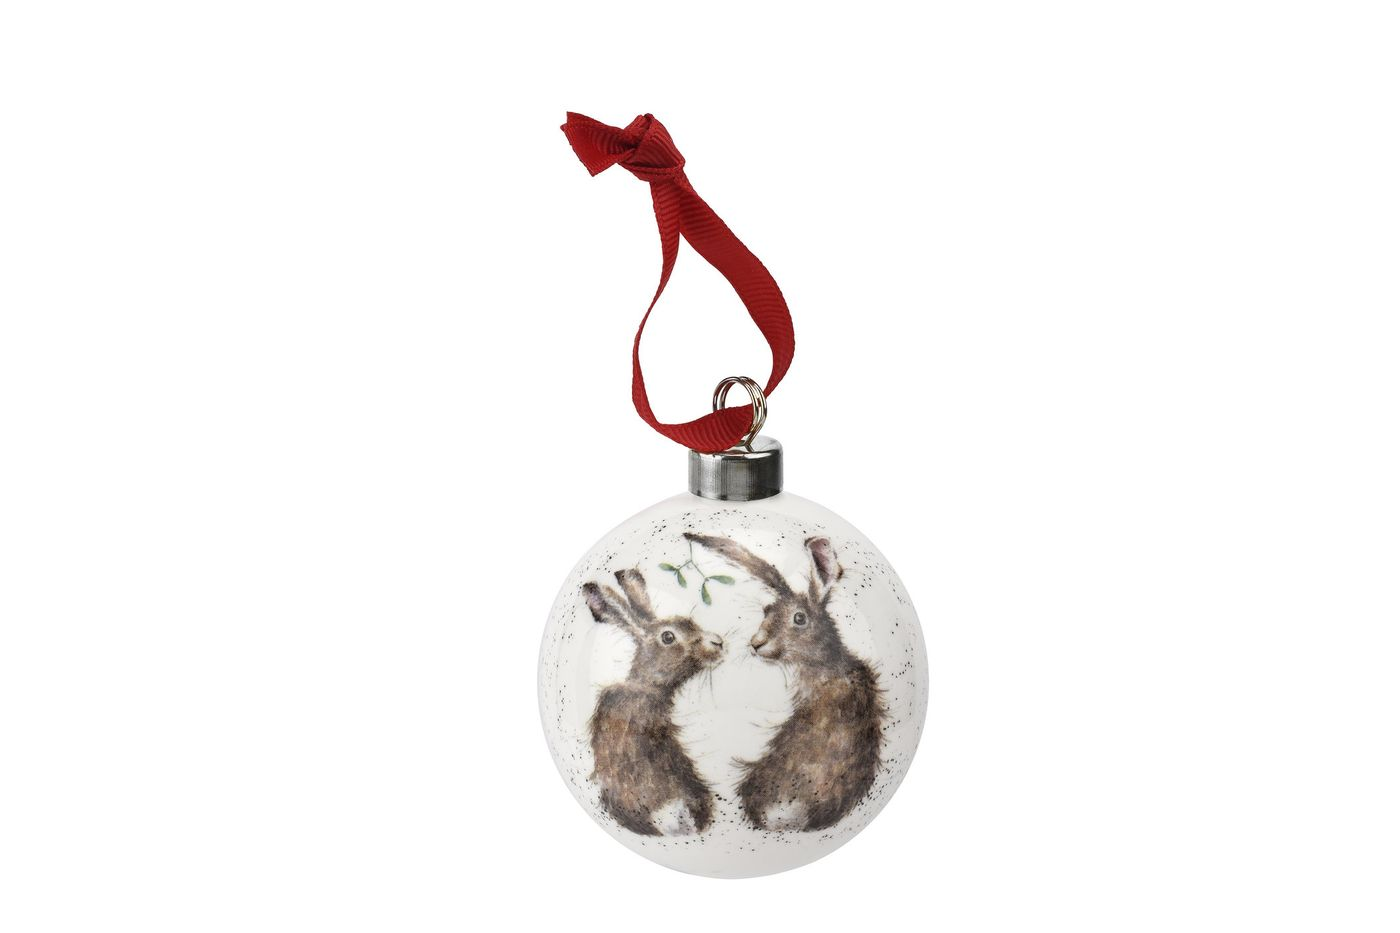 Royal Worcester Wrendale Designs Bauble All I Want for Christmas 6.6cm thumb 1